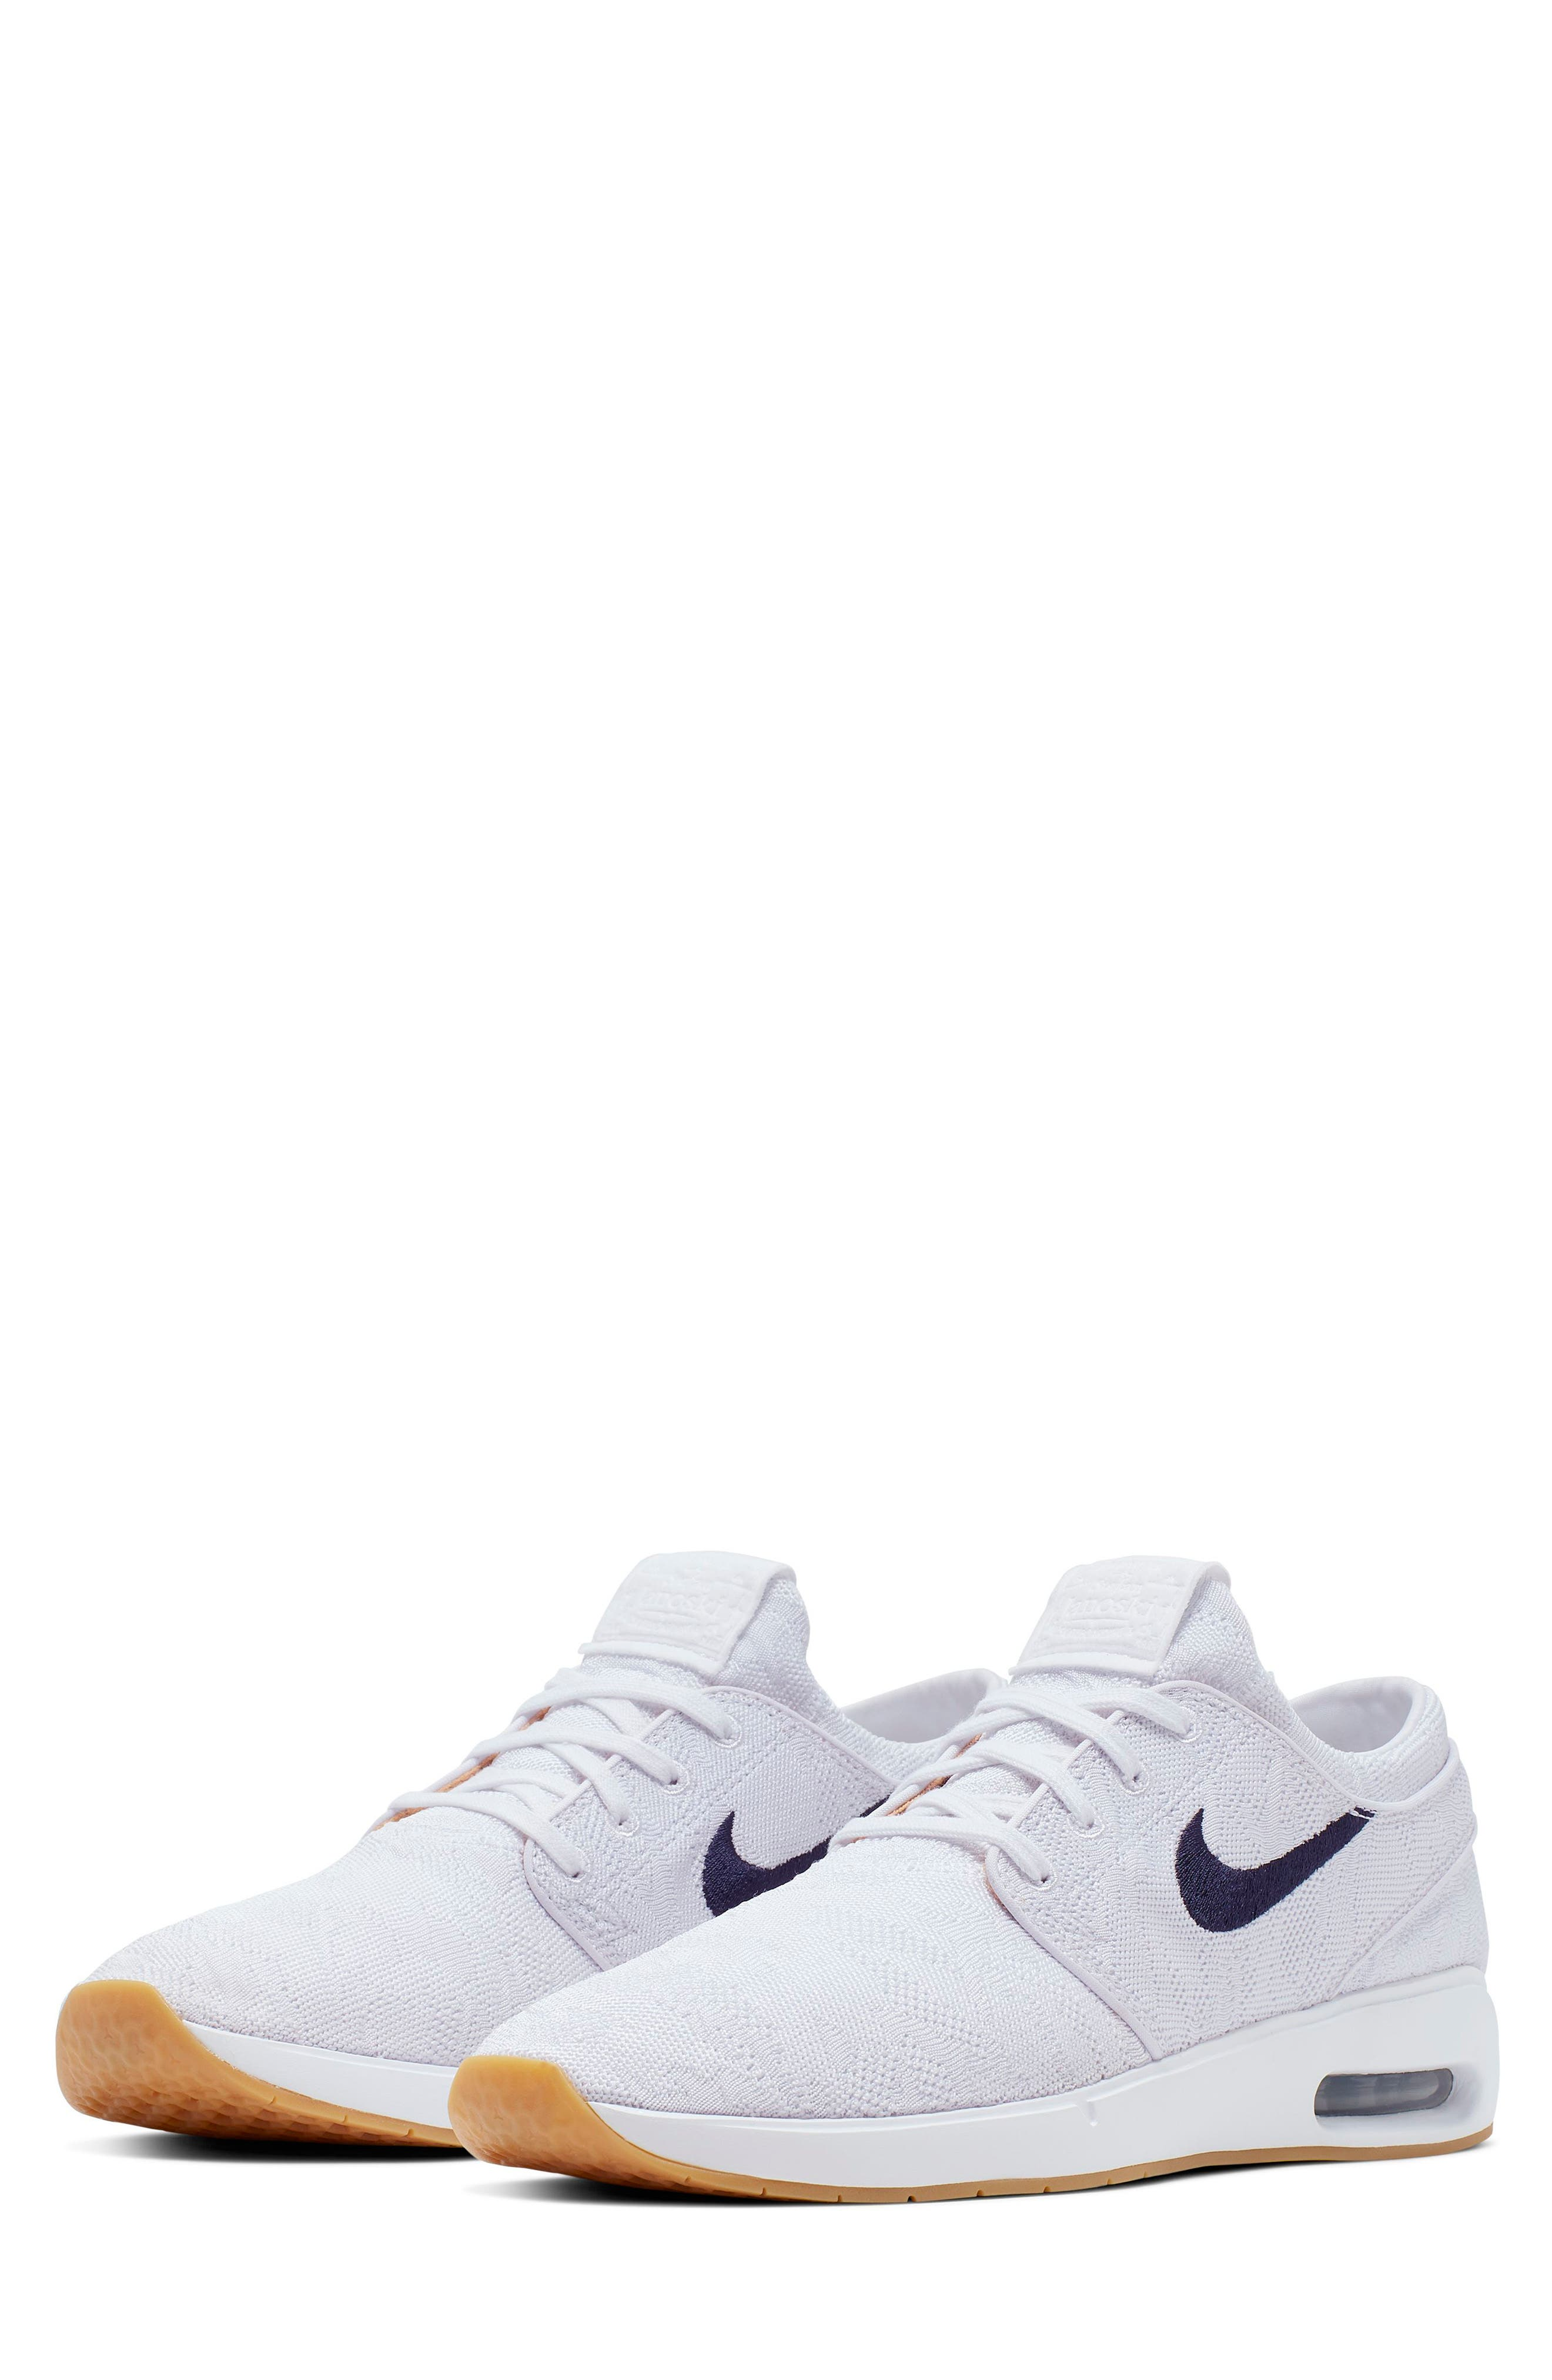 A grippy rubber sole grounds a stylish skate shoe with an air-cushioned sole for comfort. Style Name: Nike Janoski Skate Shoe (Men). Style Number: 5736605. Available in stores.